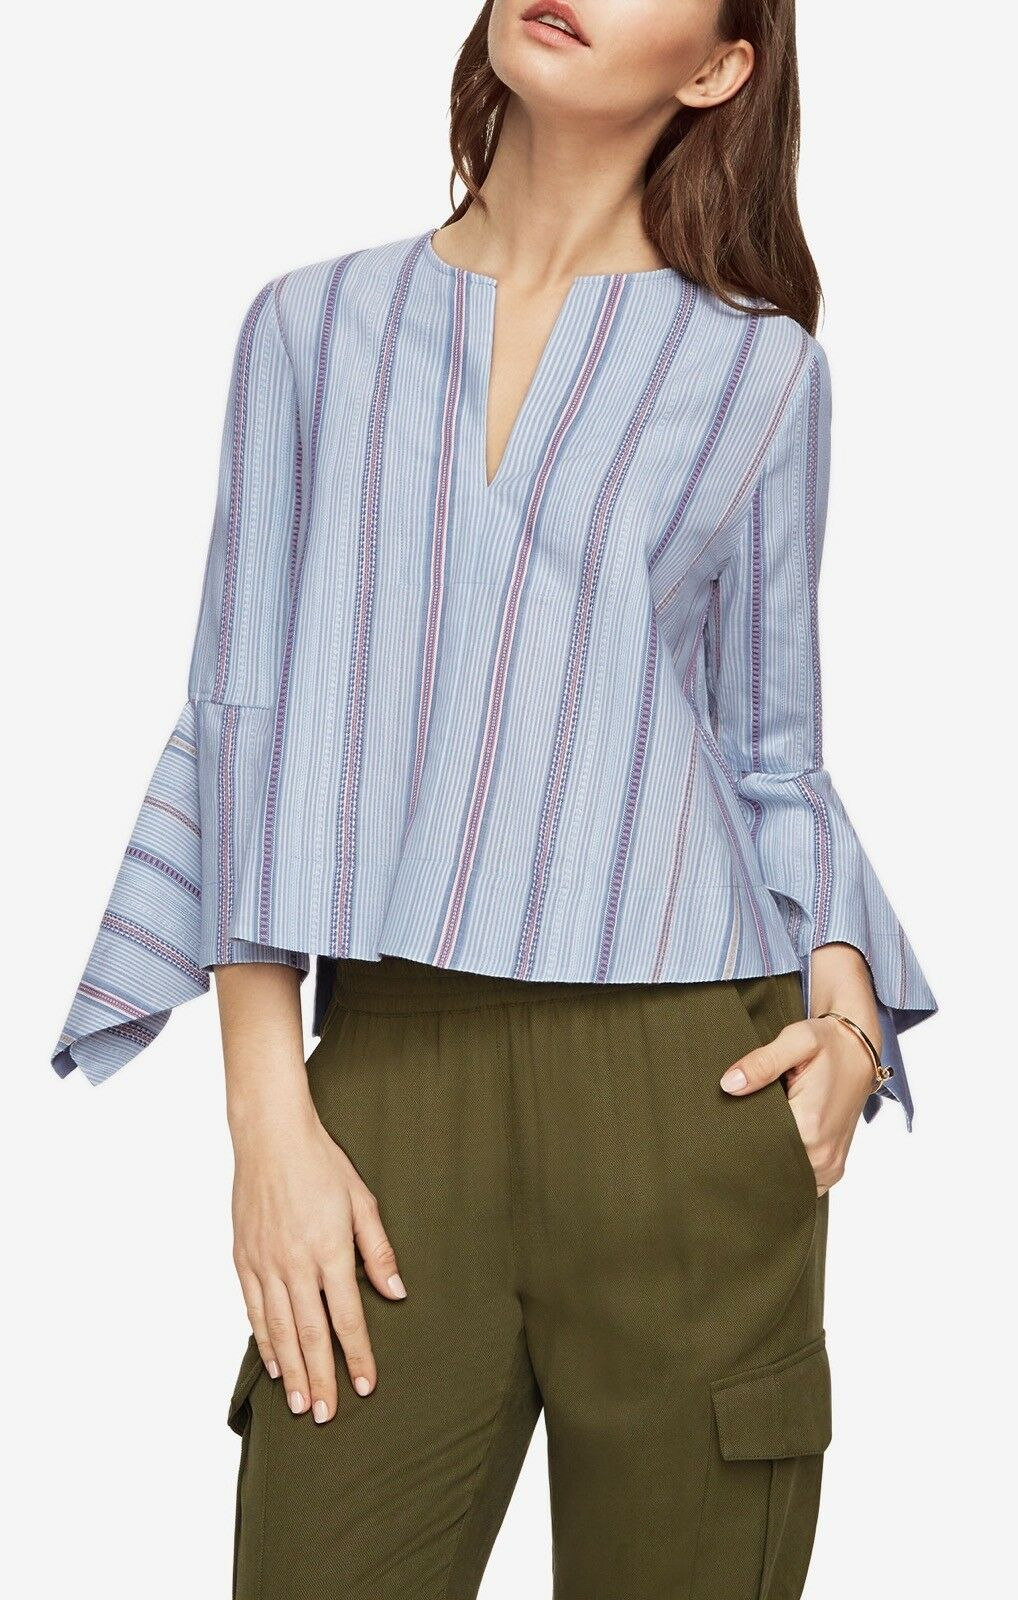 BCBG MaxAzria Teri Striped Top   Light Crystal Blau Combo   OXZ1Y441-M47